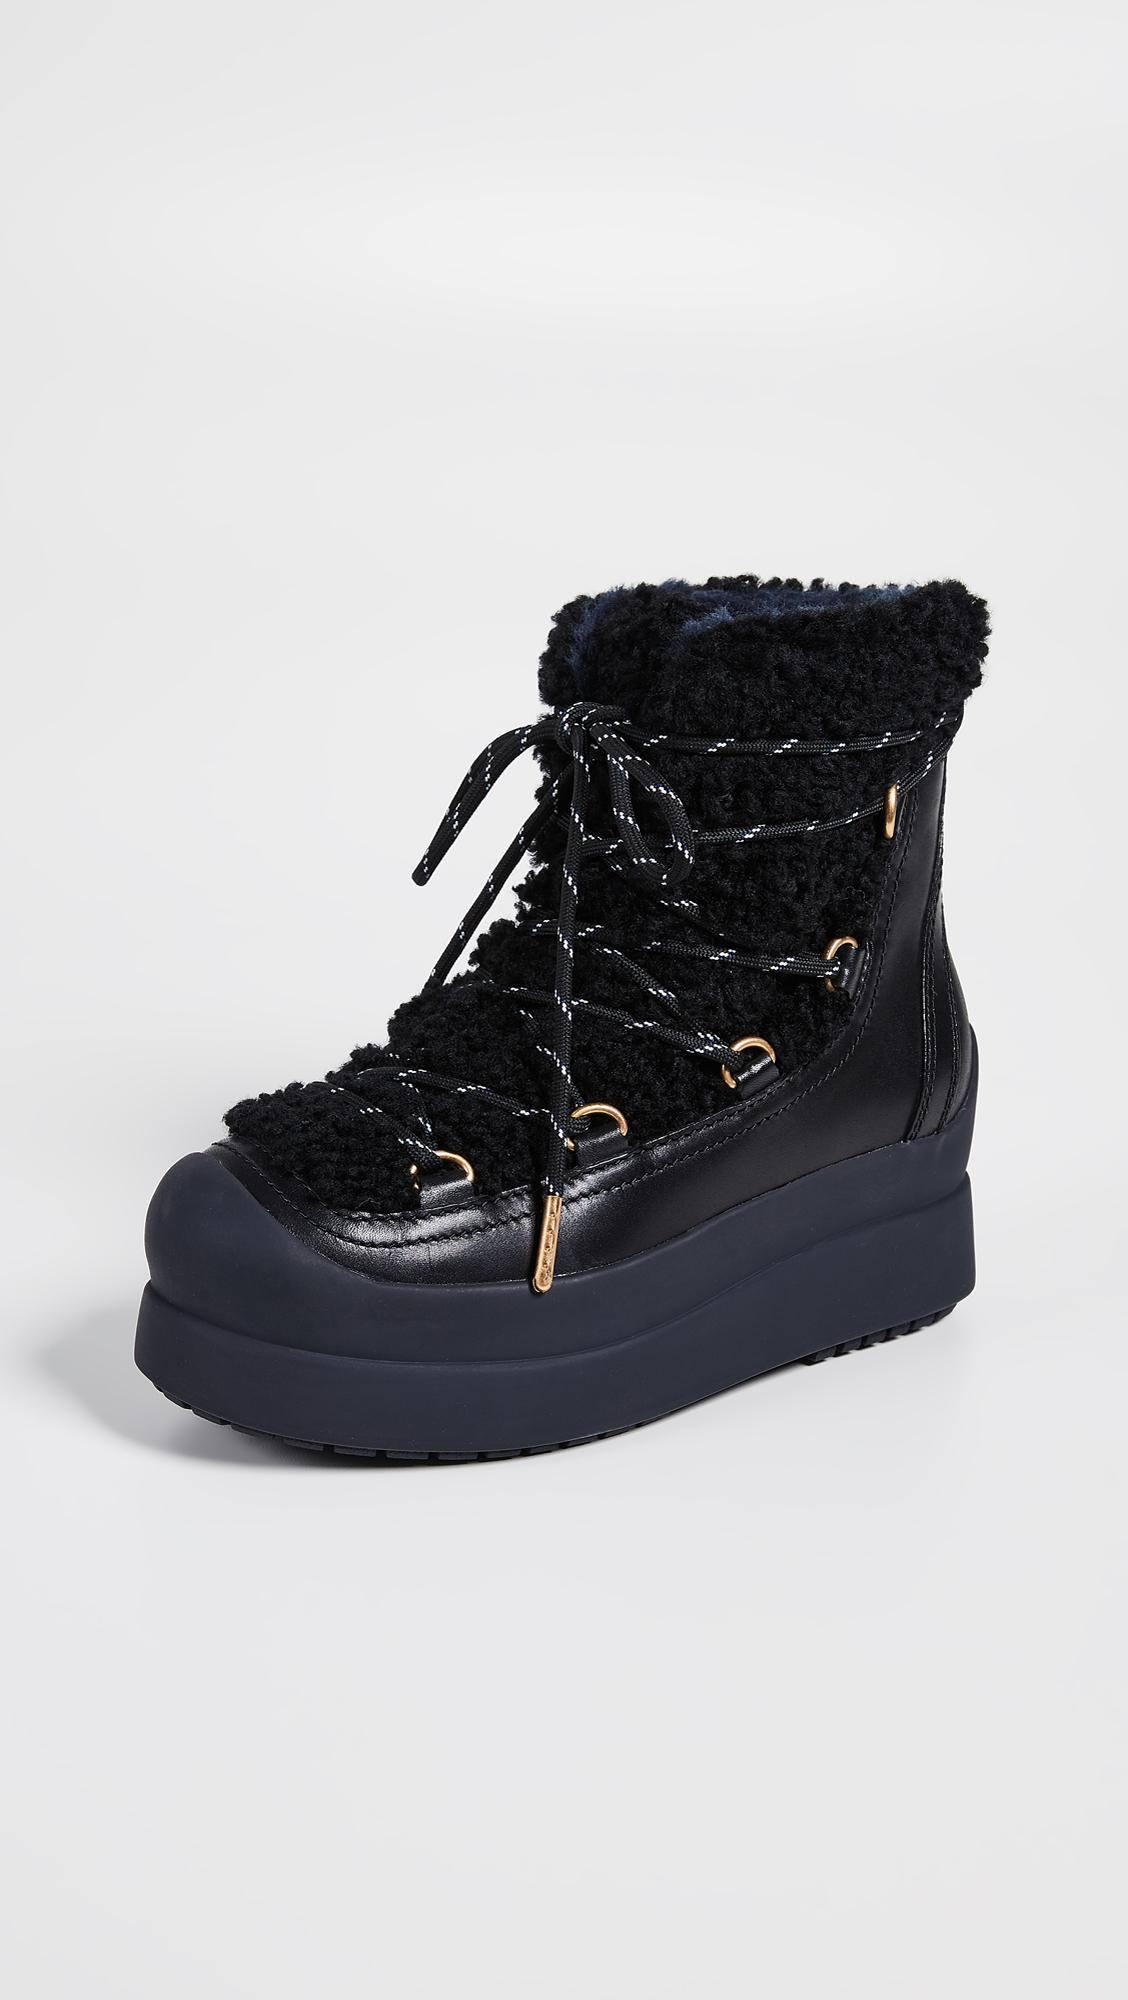 ac28dee28 Lyst - Tory Burch Courtney Shearling Boots in Black